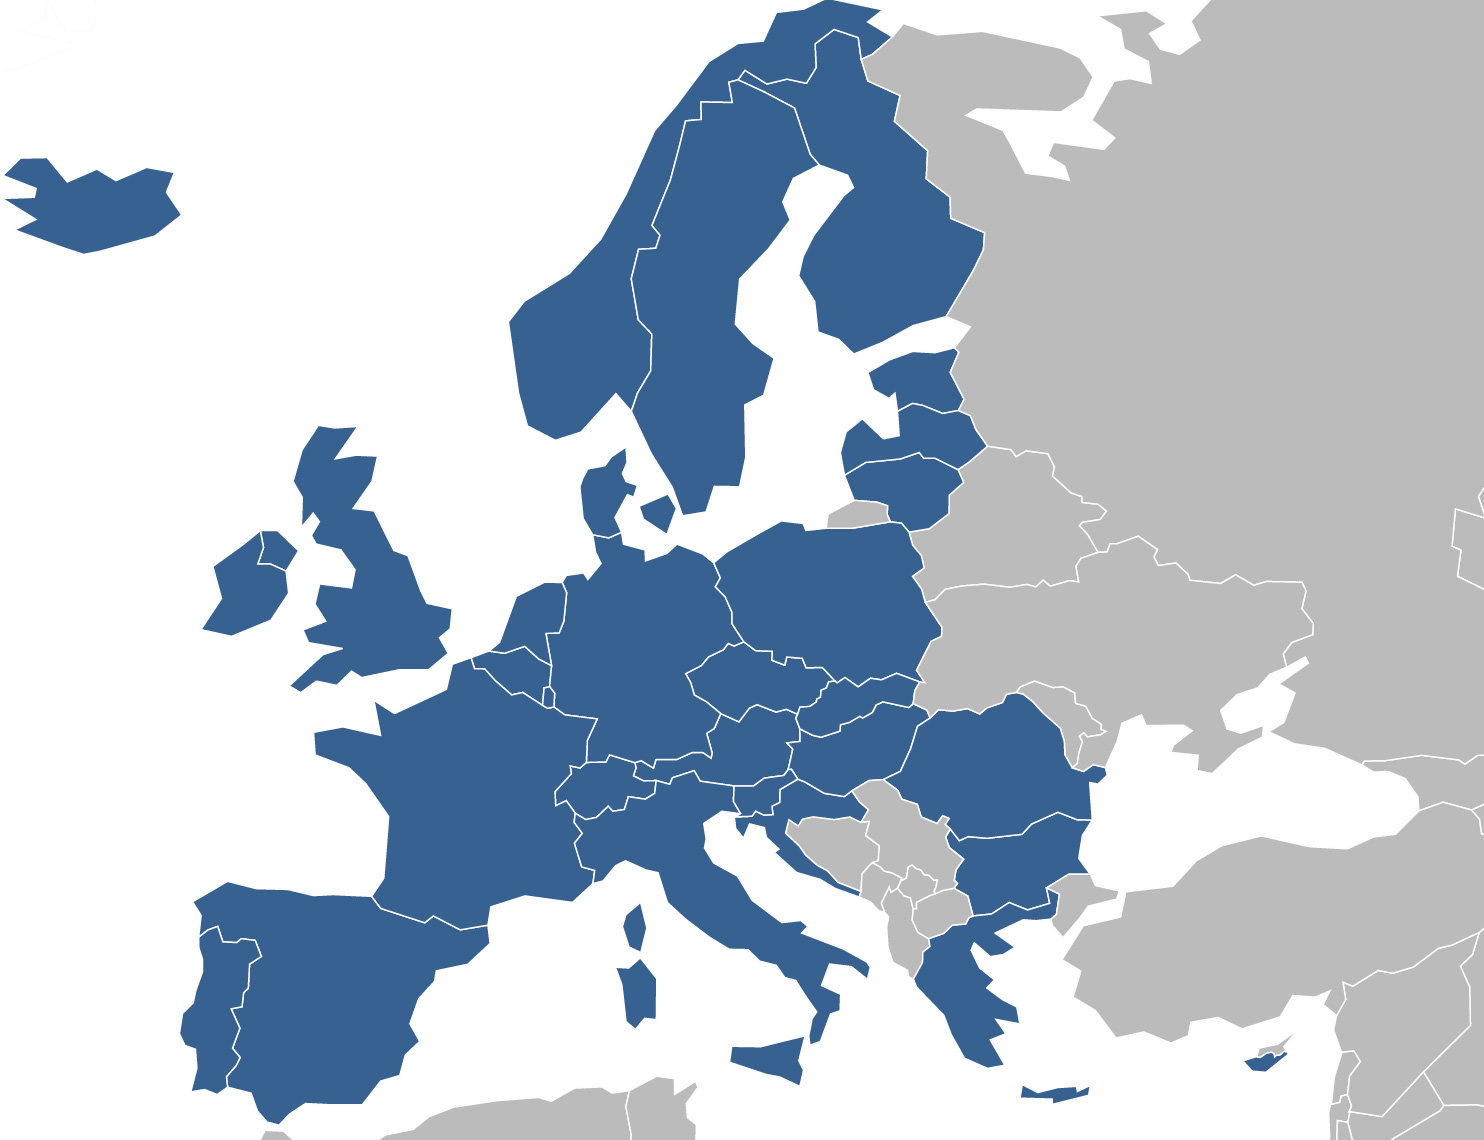 SEPA countries map